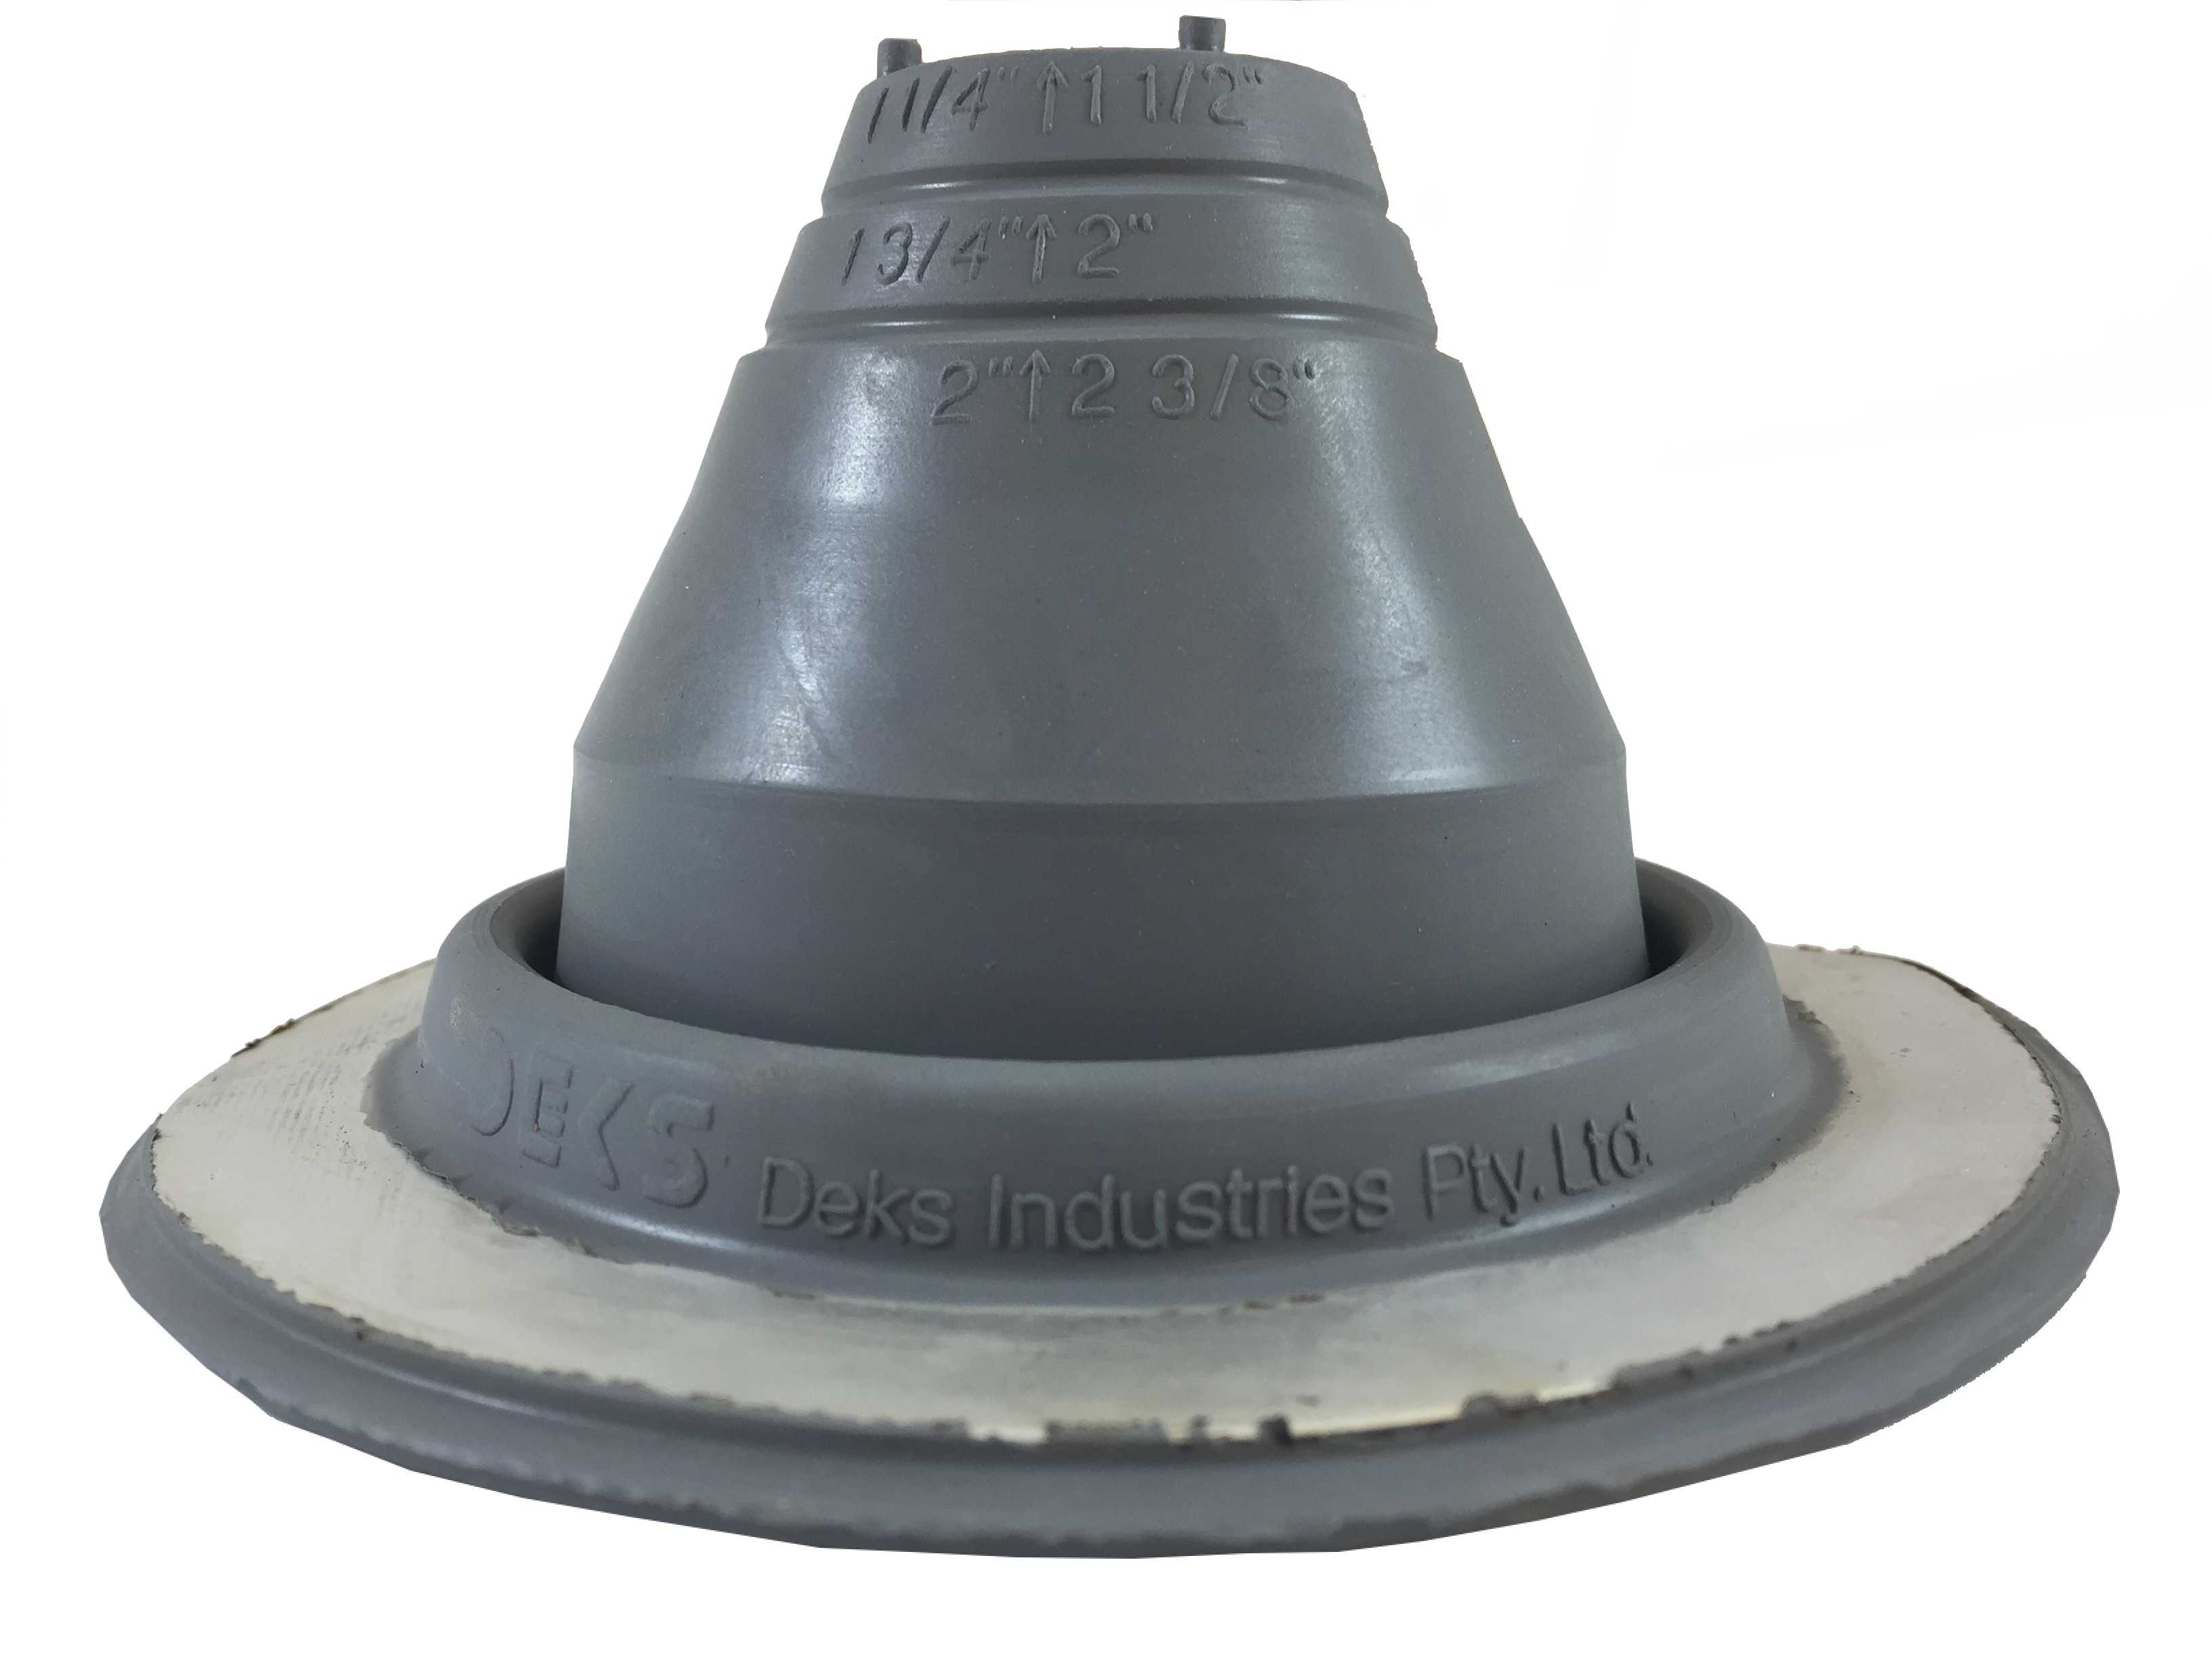 DEKTITE ROUND BASE METAL ROOFING PIPE FLASHING BOOT: #1 GRAY EPDM Flexible Pipe Flashing Dektite (for OD pipe sizes 1/4' - 2') - Metal Roof Jack Pipe Boot - Metal Roofing Pipe Flashing - Deks Dektite